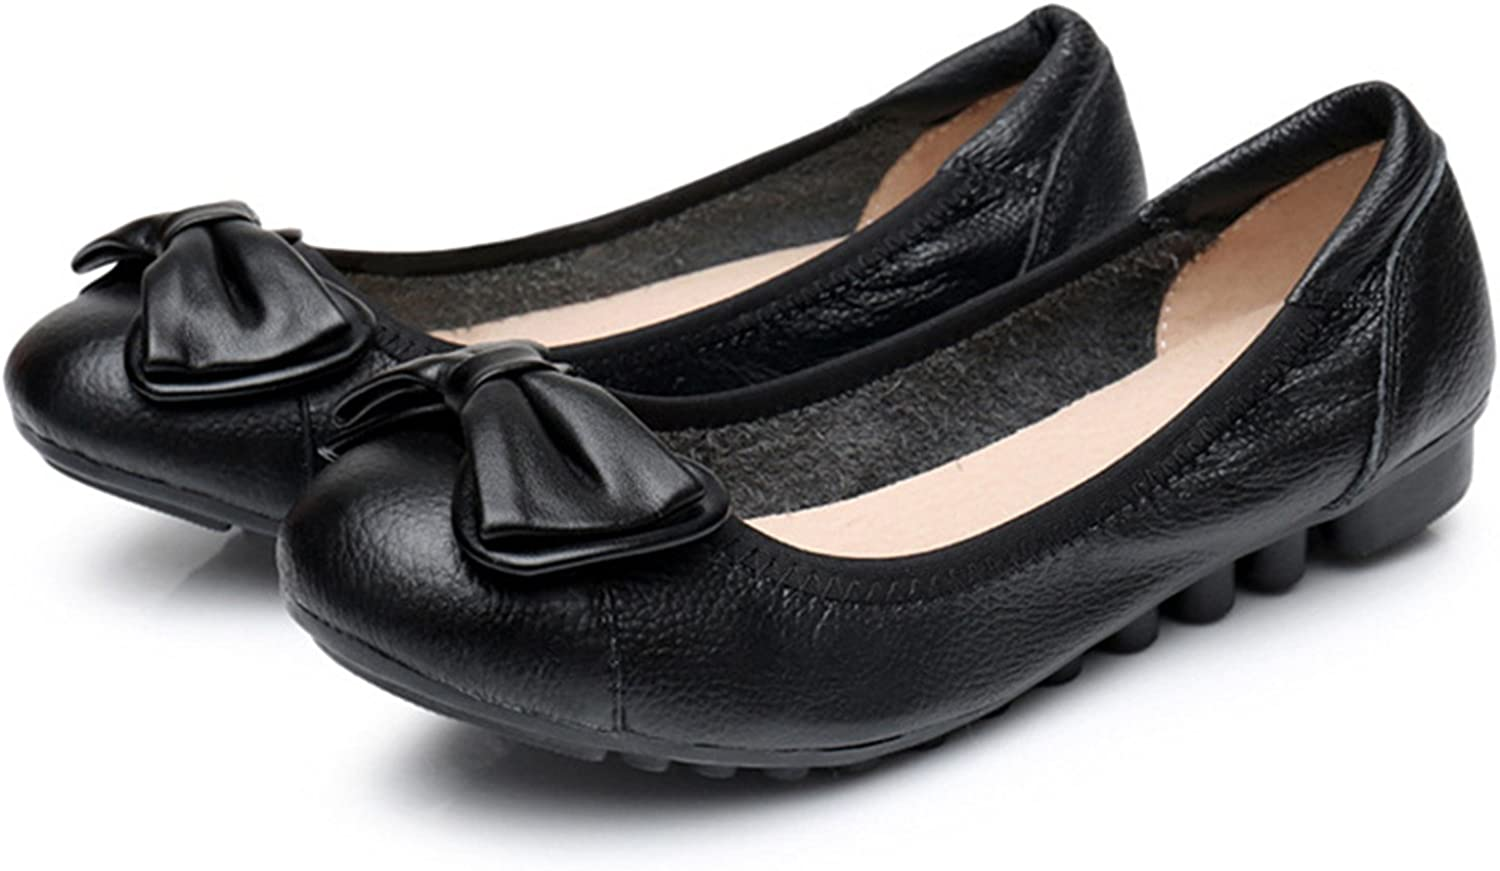 Dormery shoes Women Casual Black Oxford shoes for Women Flats Comfortable Slip On Women shoes